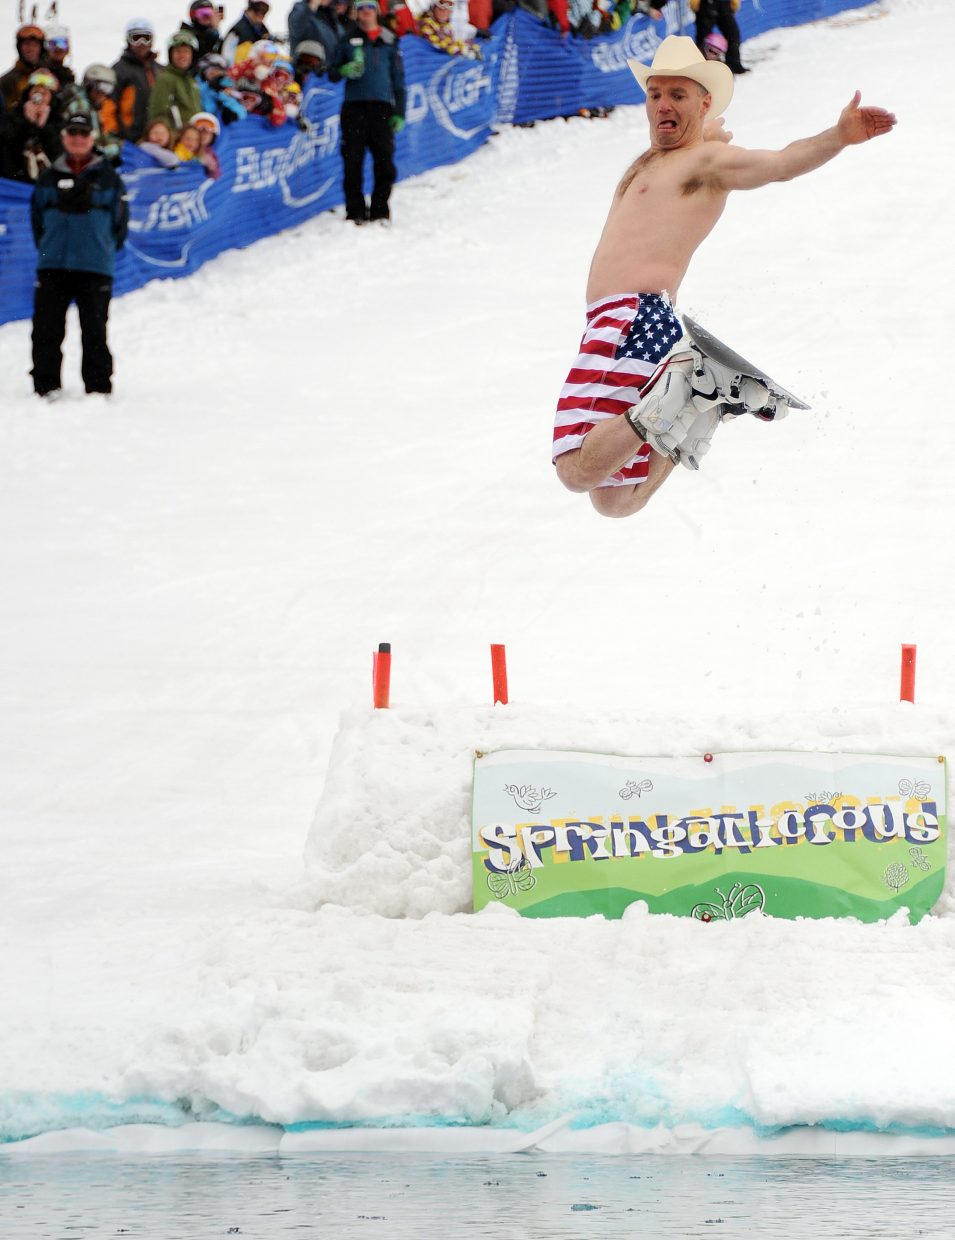 Ryan Speir flies off a kicker during Steamboat's Splashdown Pond skim competition that was part of the Closing Day festivities at Steamboat Ski Area.